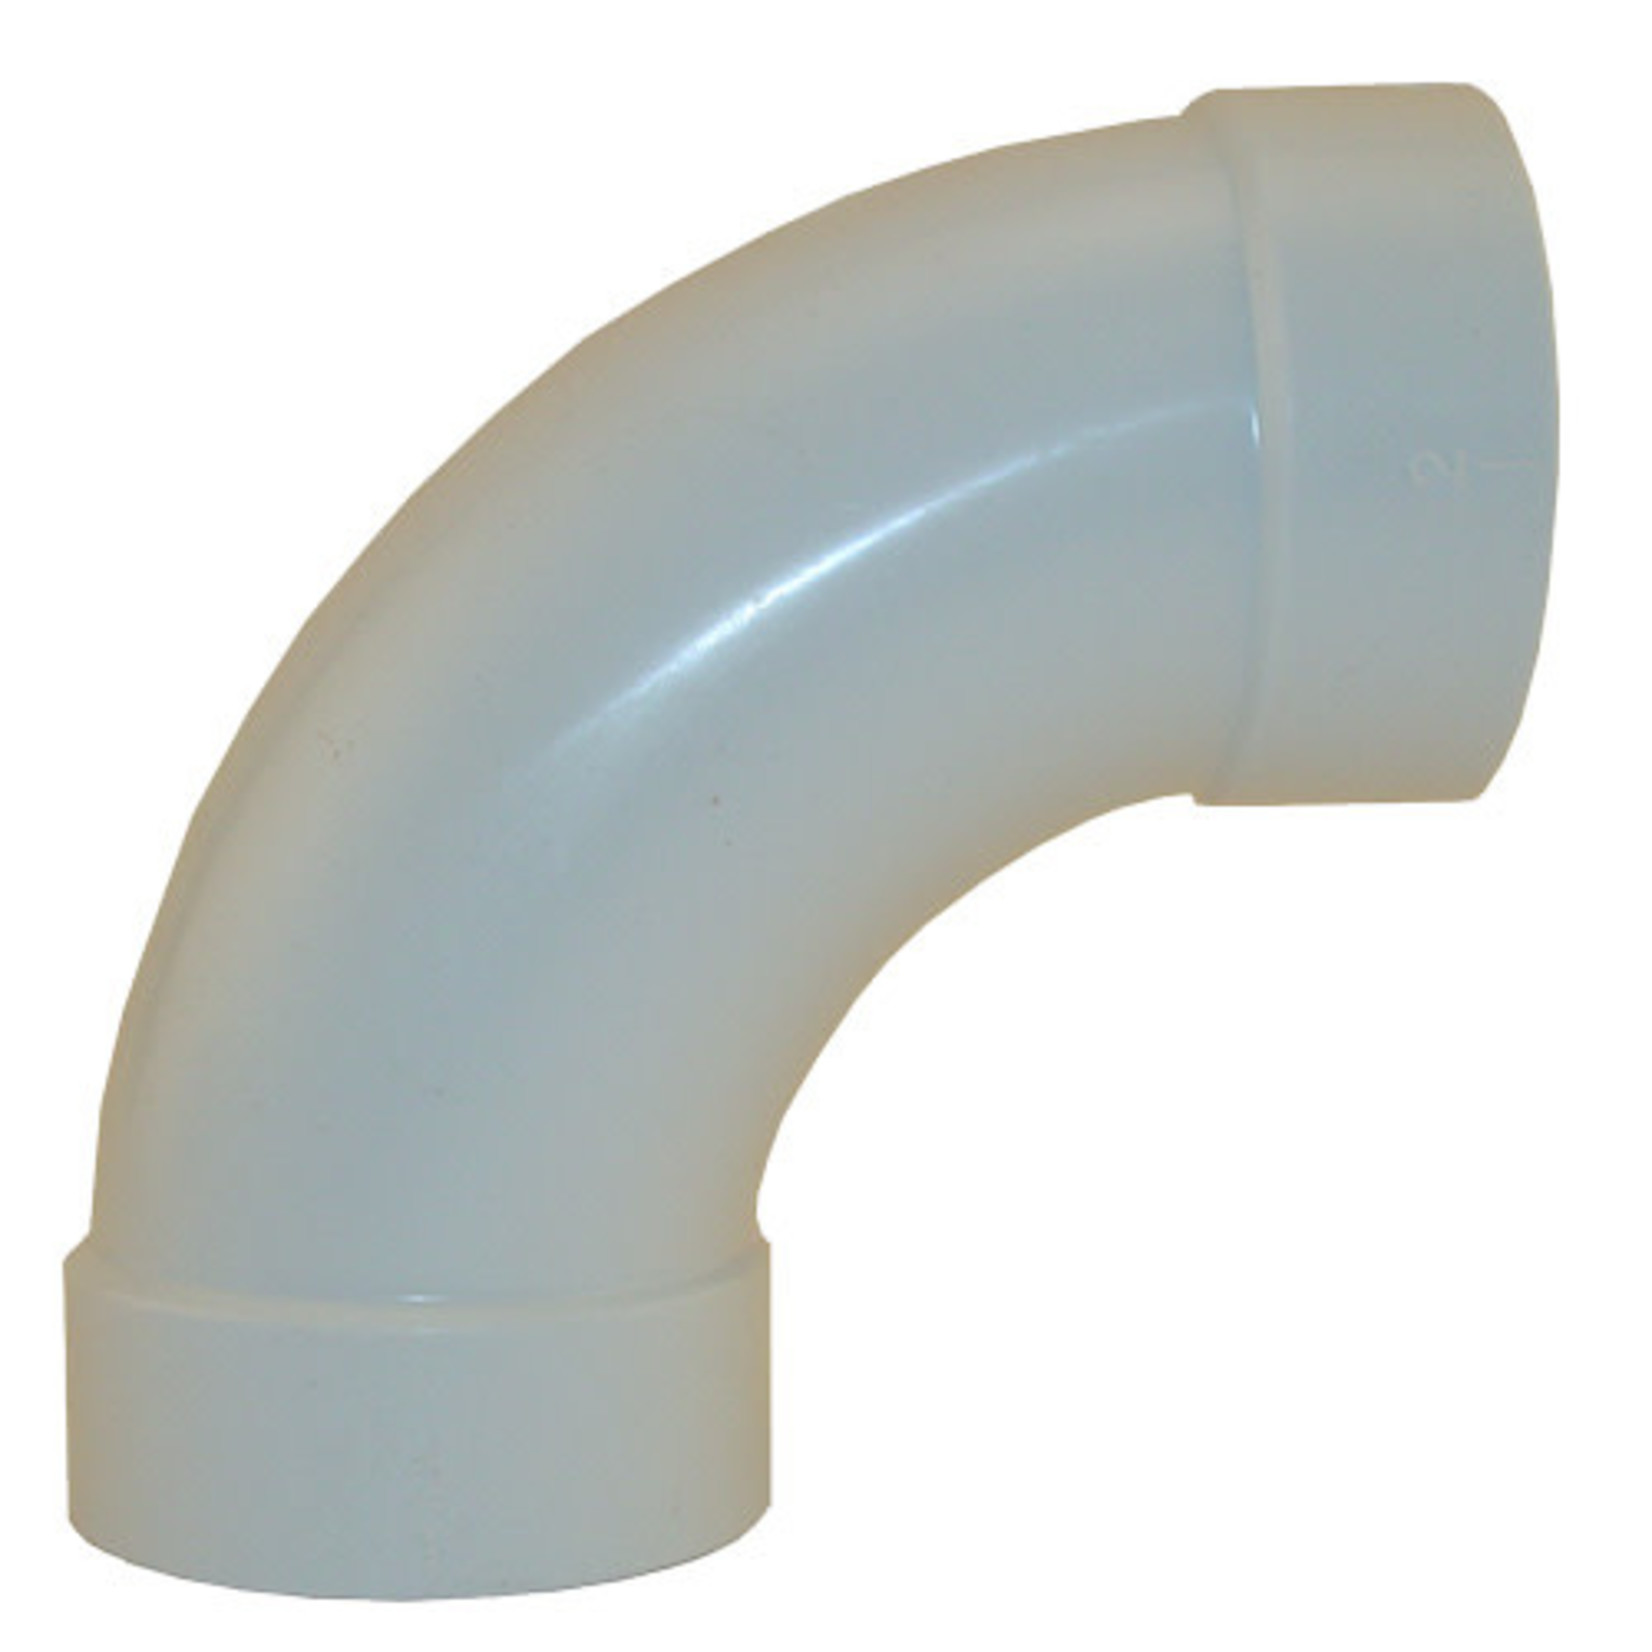 Vaculine Central Vacuum Sweep 90 Elbow Fitting - Single